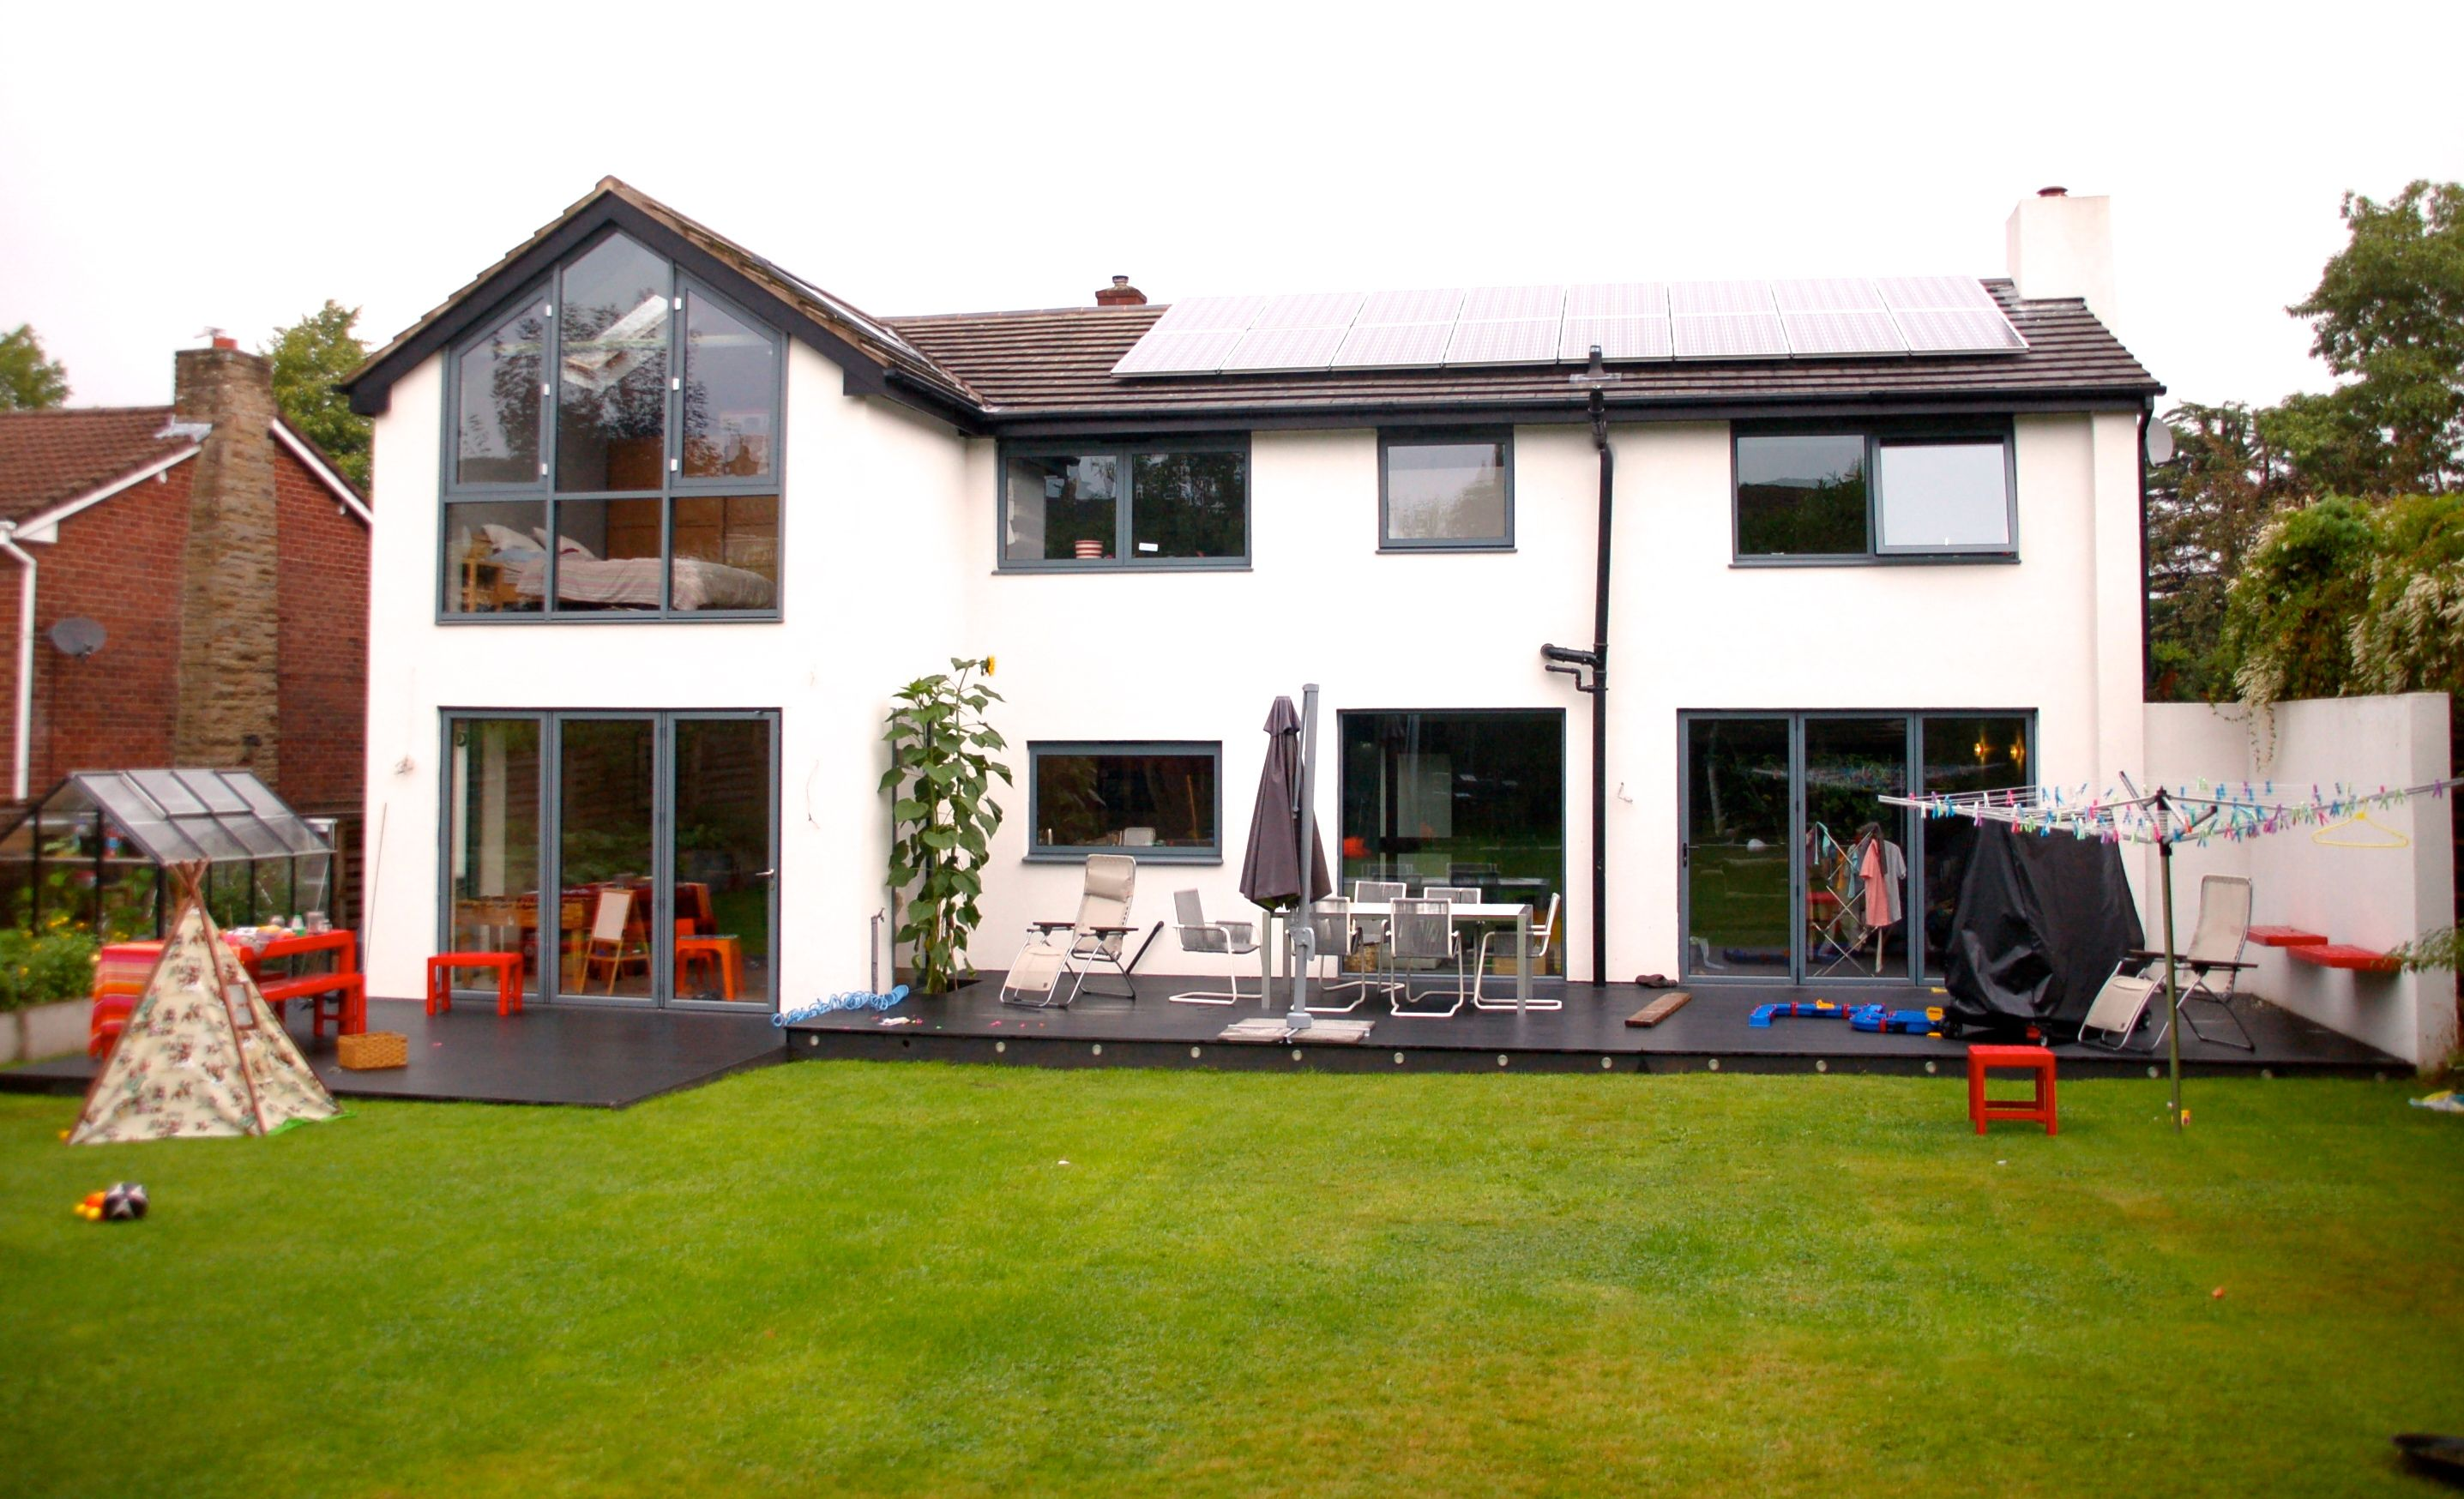 Exterior residential windows - Finished Build Aluminium Windows And Bi Fold Doors Give House New Lease Of Life With